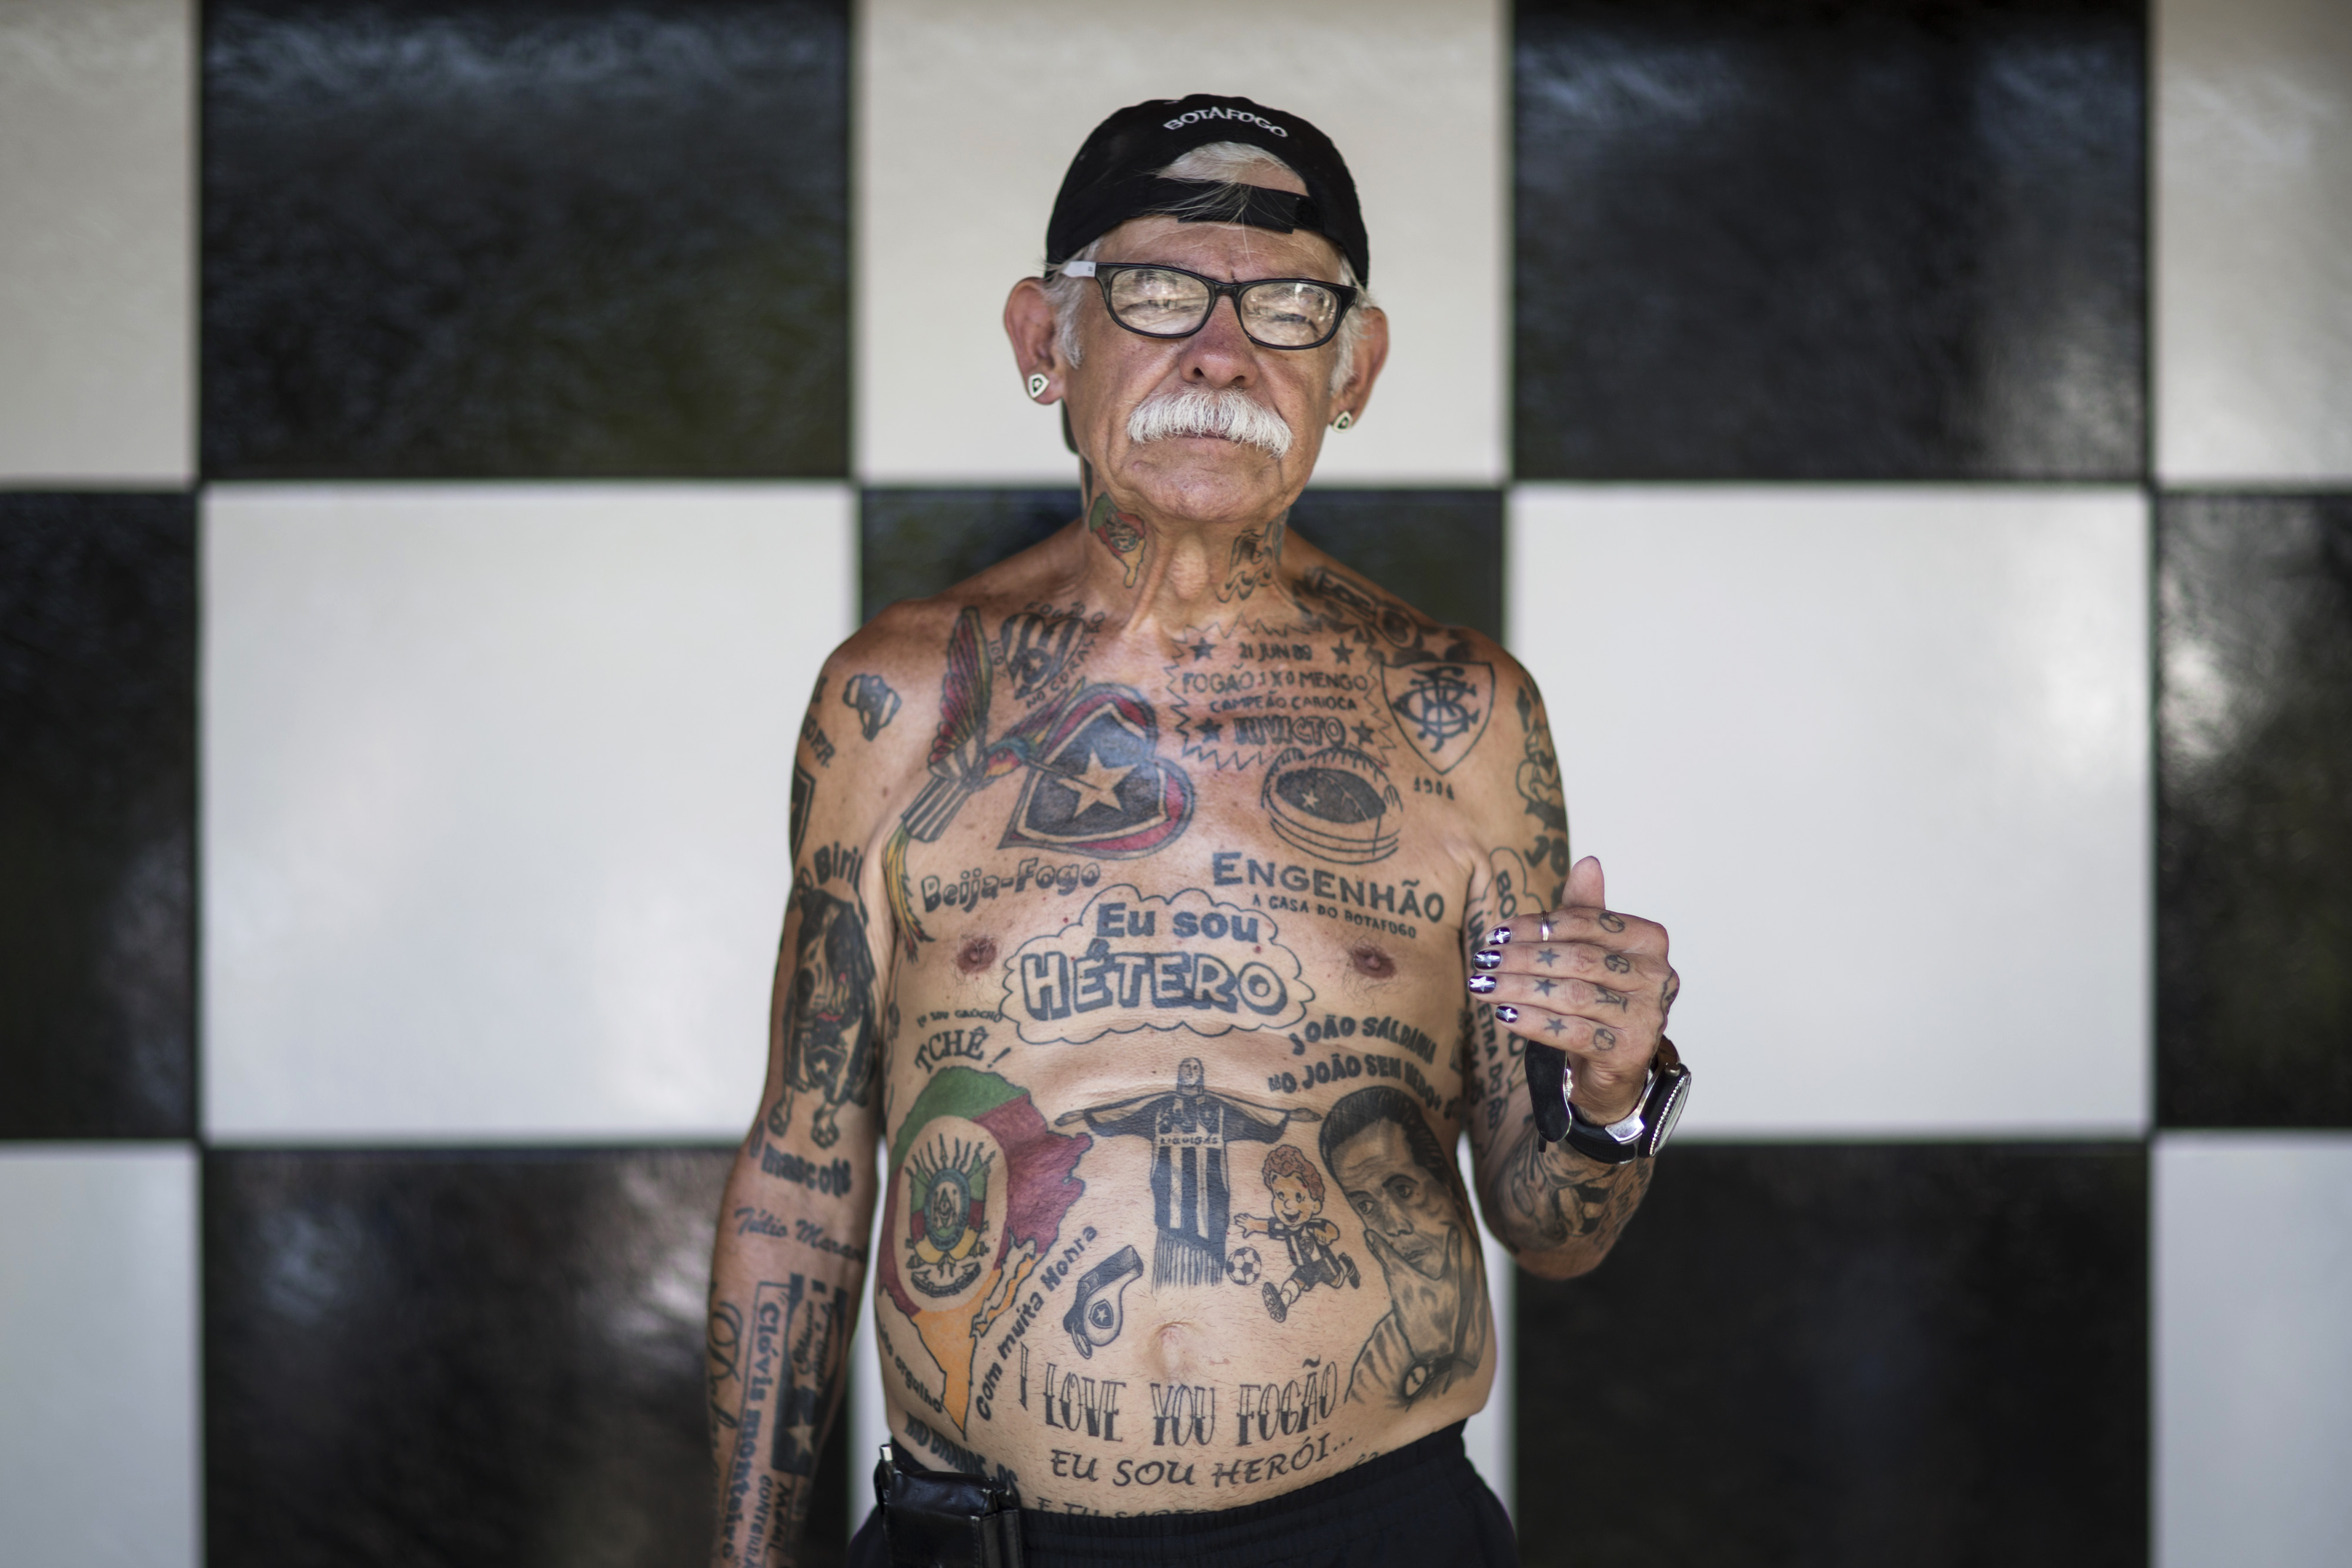 Soccer fan Delneri Viana poses for a photo in his home, decorated with Botafogo colors in Rio de Janeiro, Brazil on May 8, 2014. Viana has 83 and counting tattoos and never wears anything without the team's emblem.